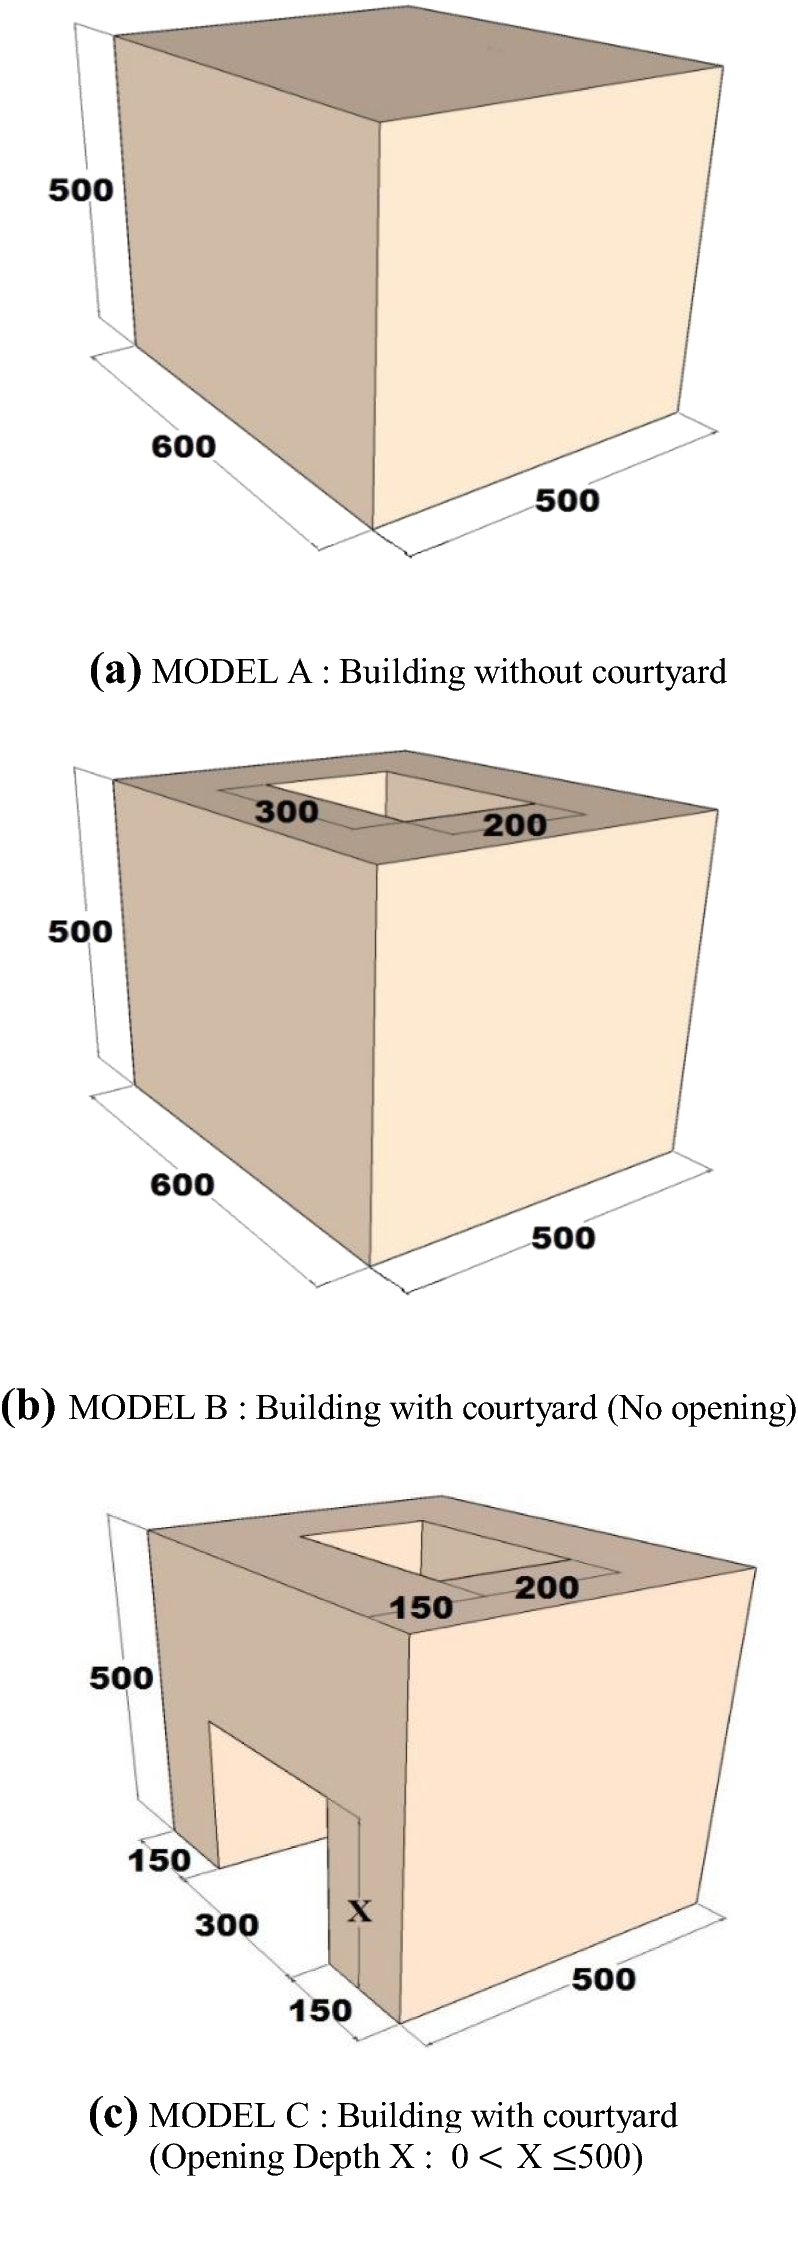 Effects of courtyard and opening on a rectangular plan